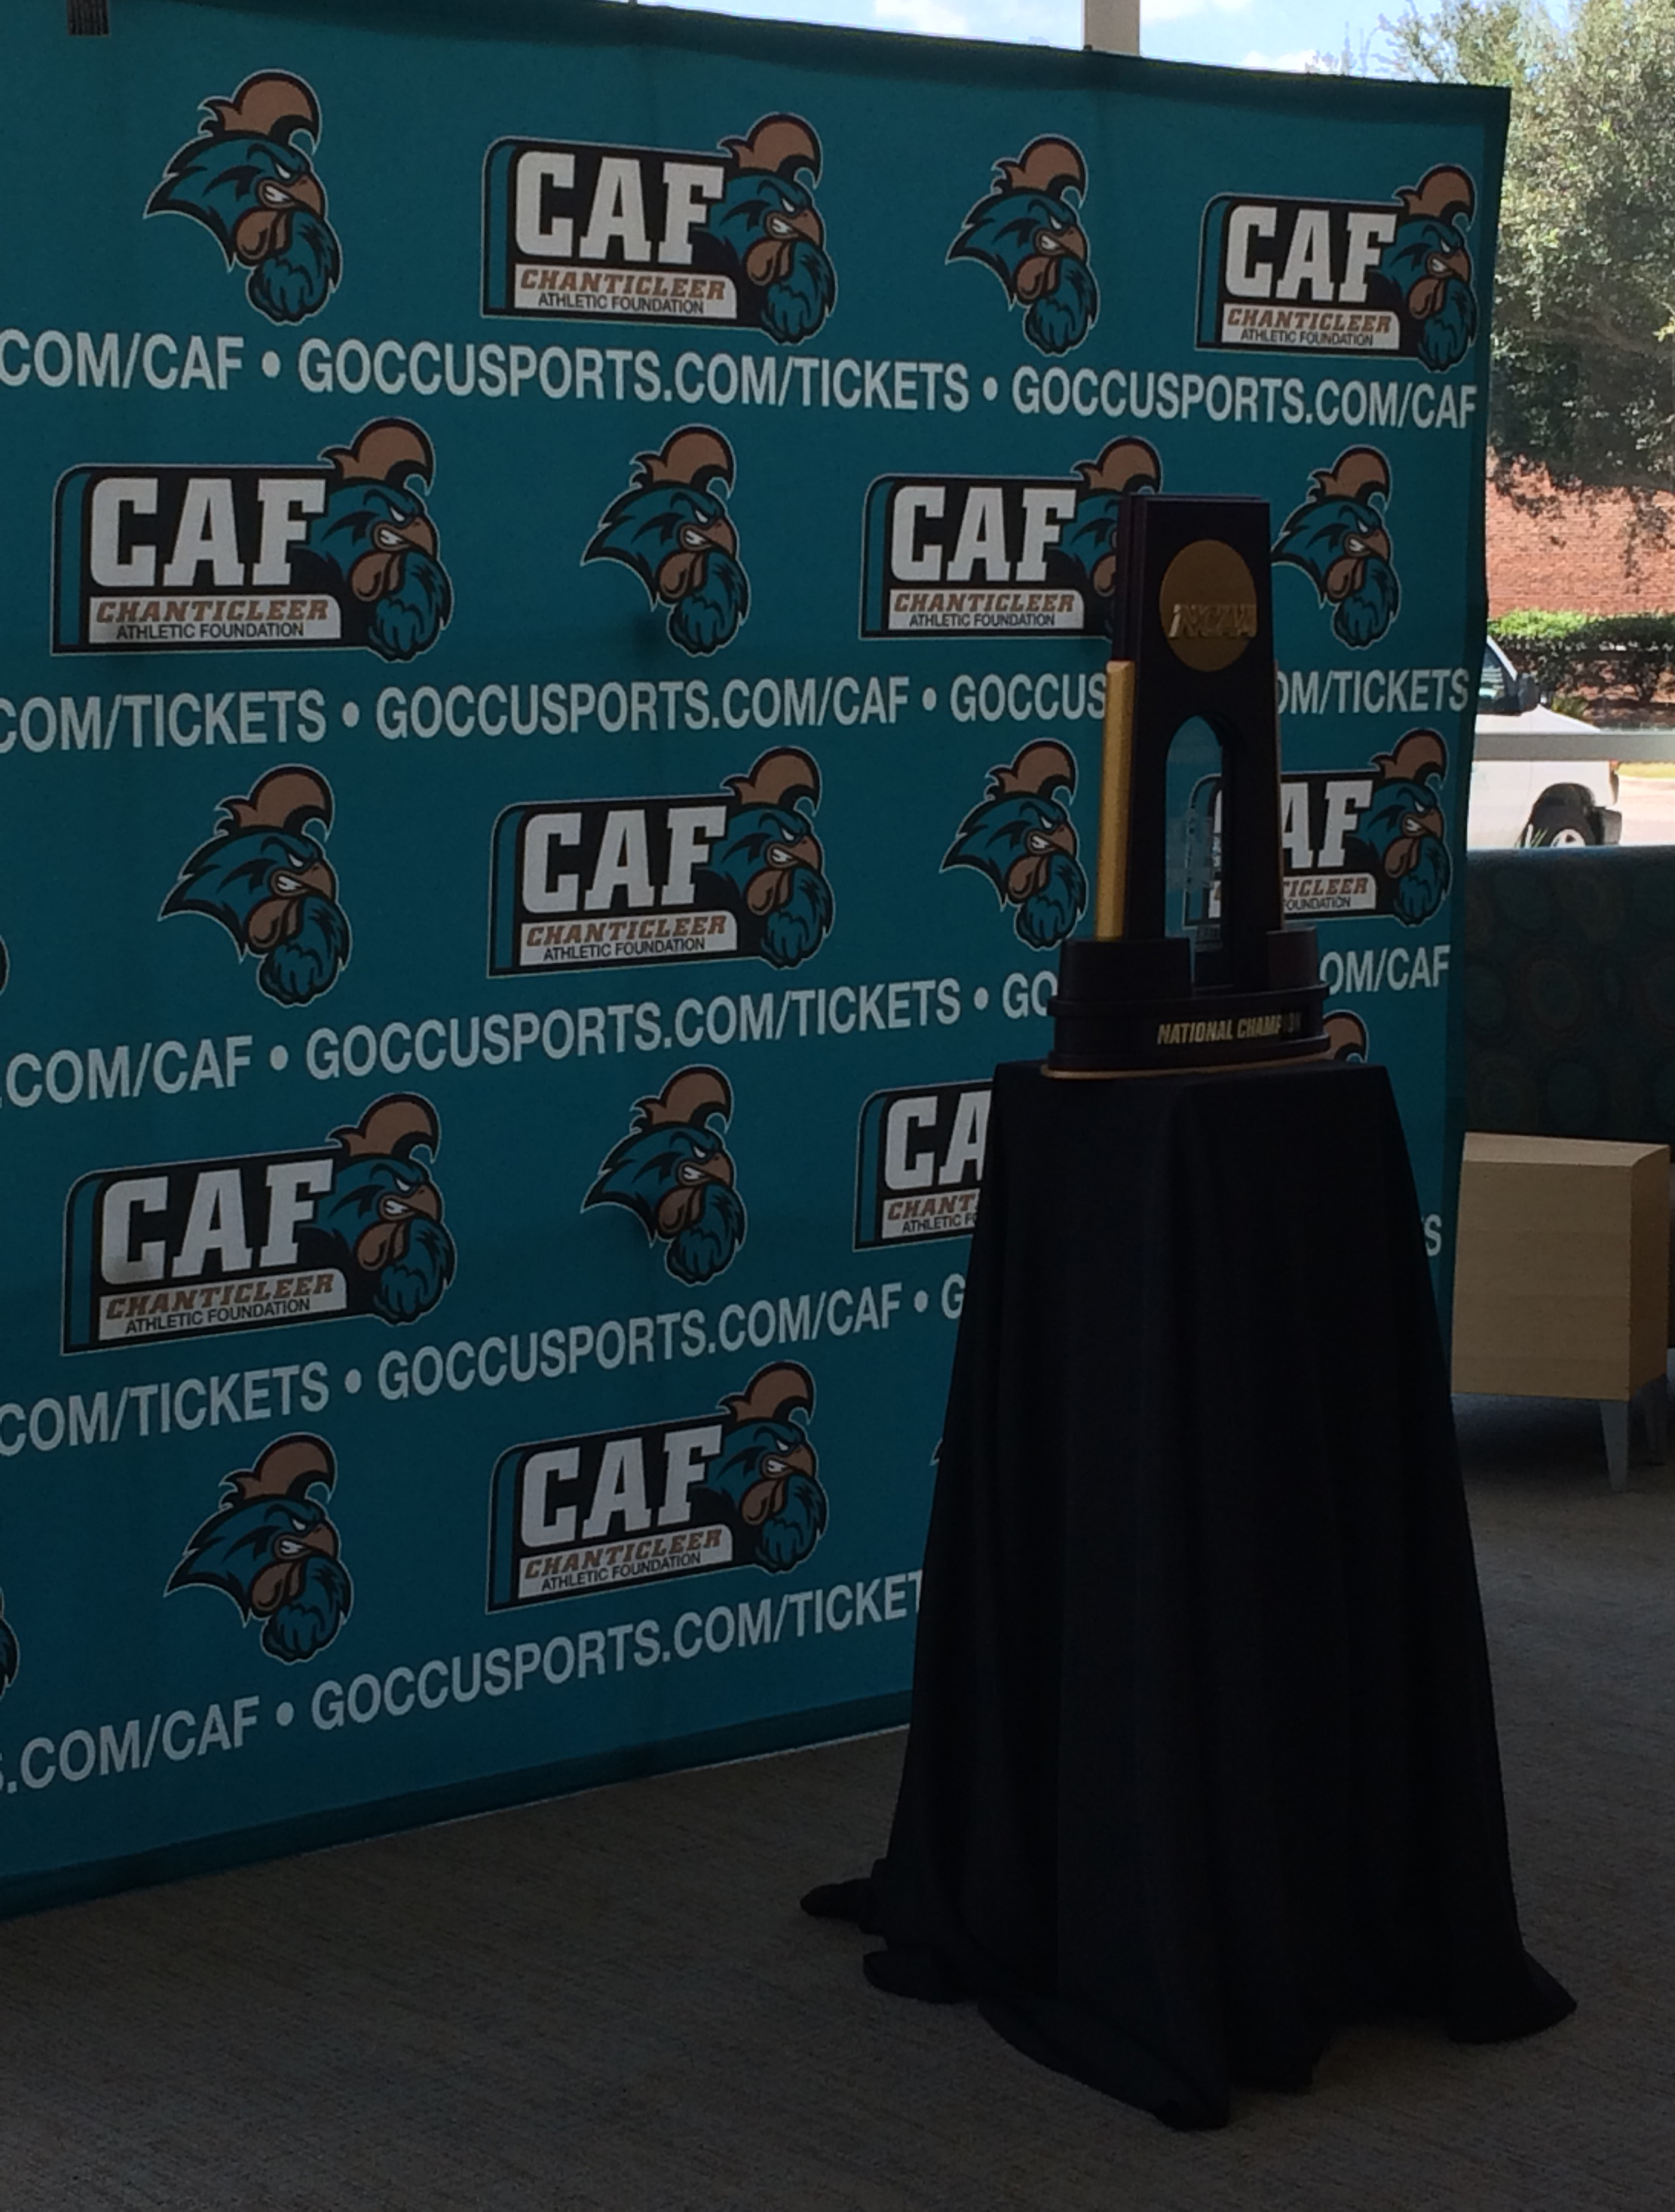 The national championship trophy was available for students and staff to take a photo with today.